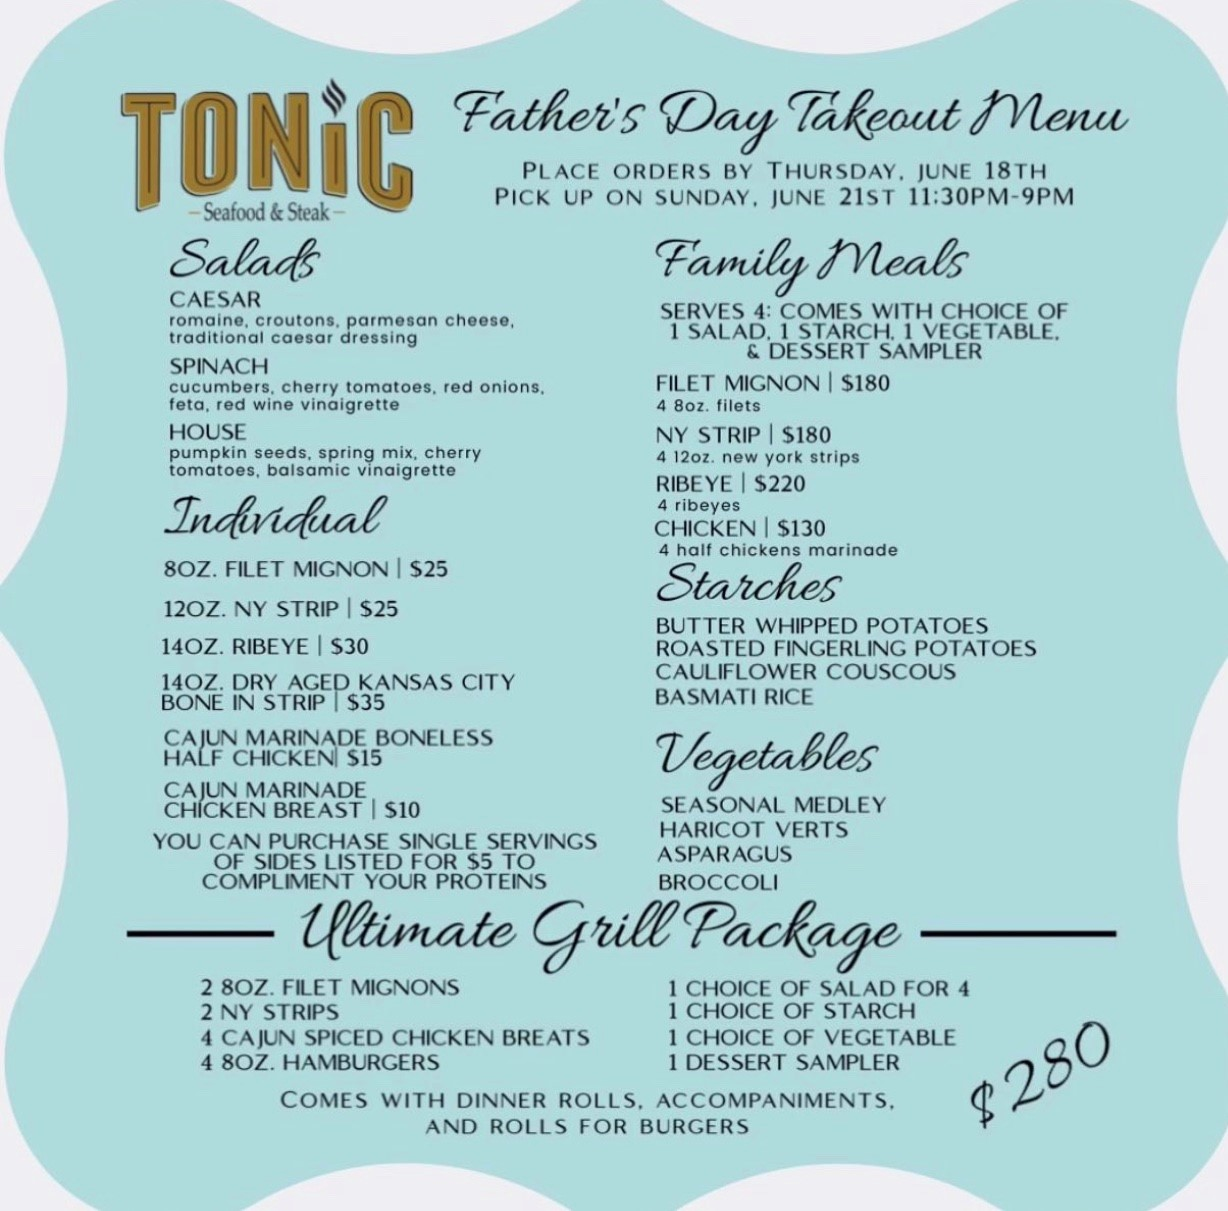 Father's Day Menu For Tonic in Wilmington